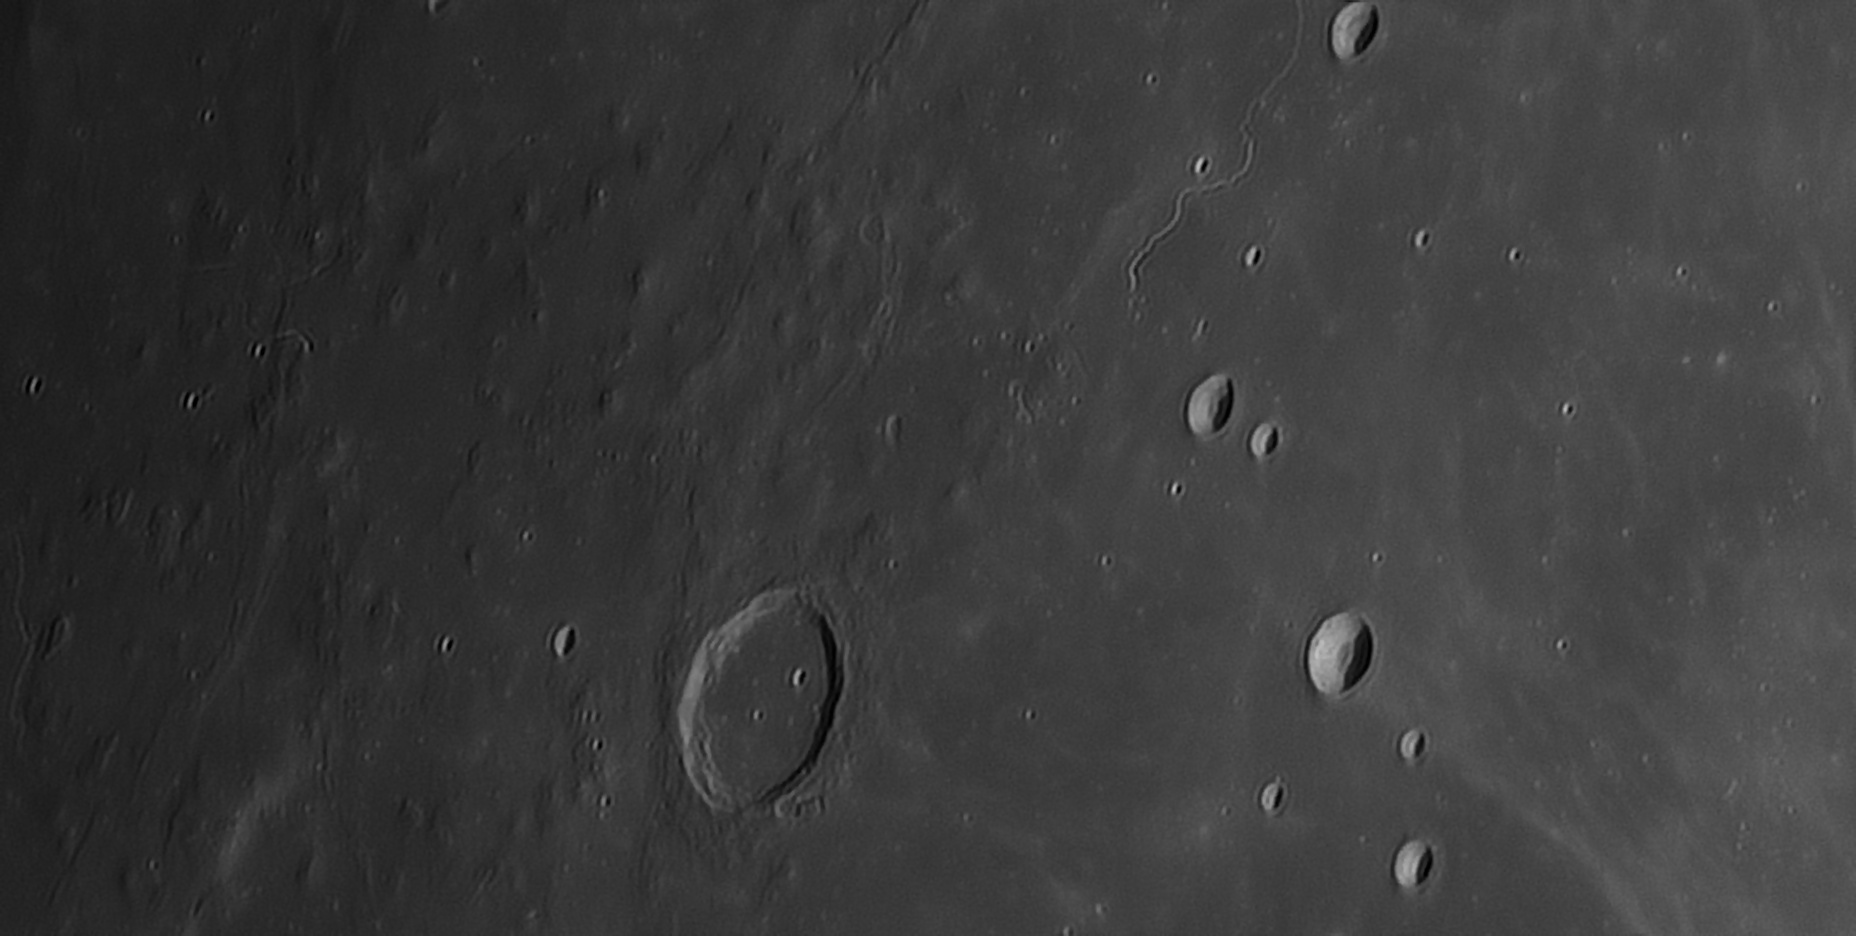 5feda0a0459c3_Moon_221820_271220_ZWOASI290MM_R-ccd_AS_P50_lapl6_ap1089.jpg.d13845cd8402b839e1e1346c30683a88.jpg